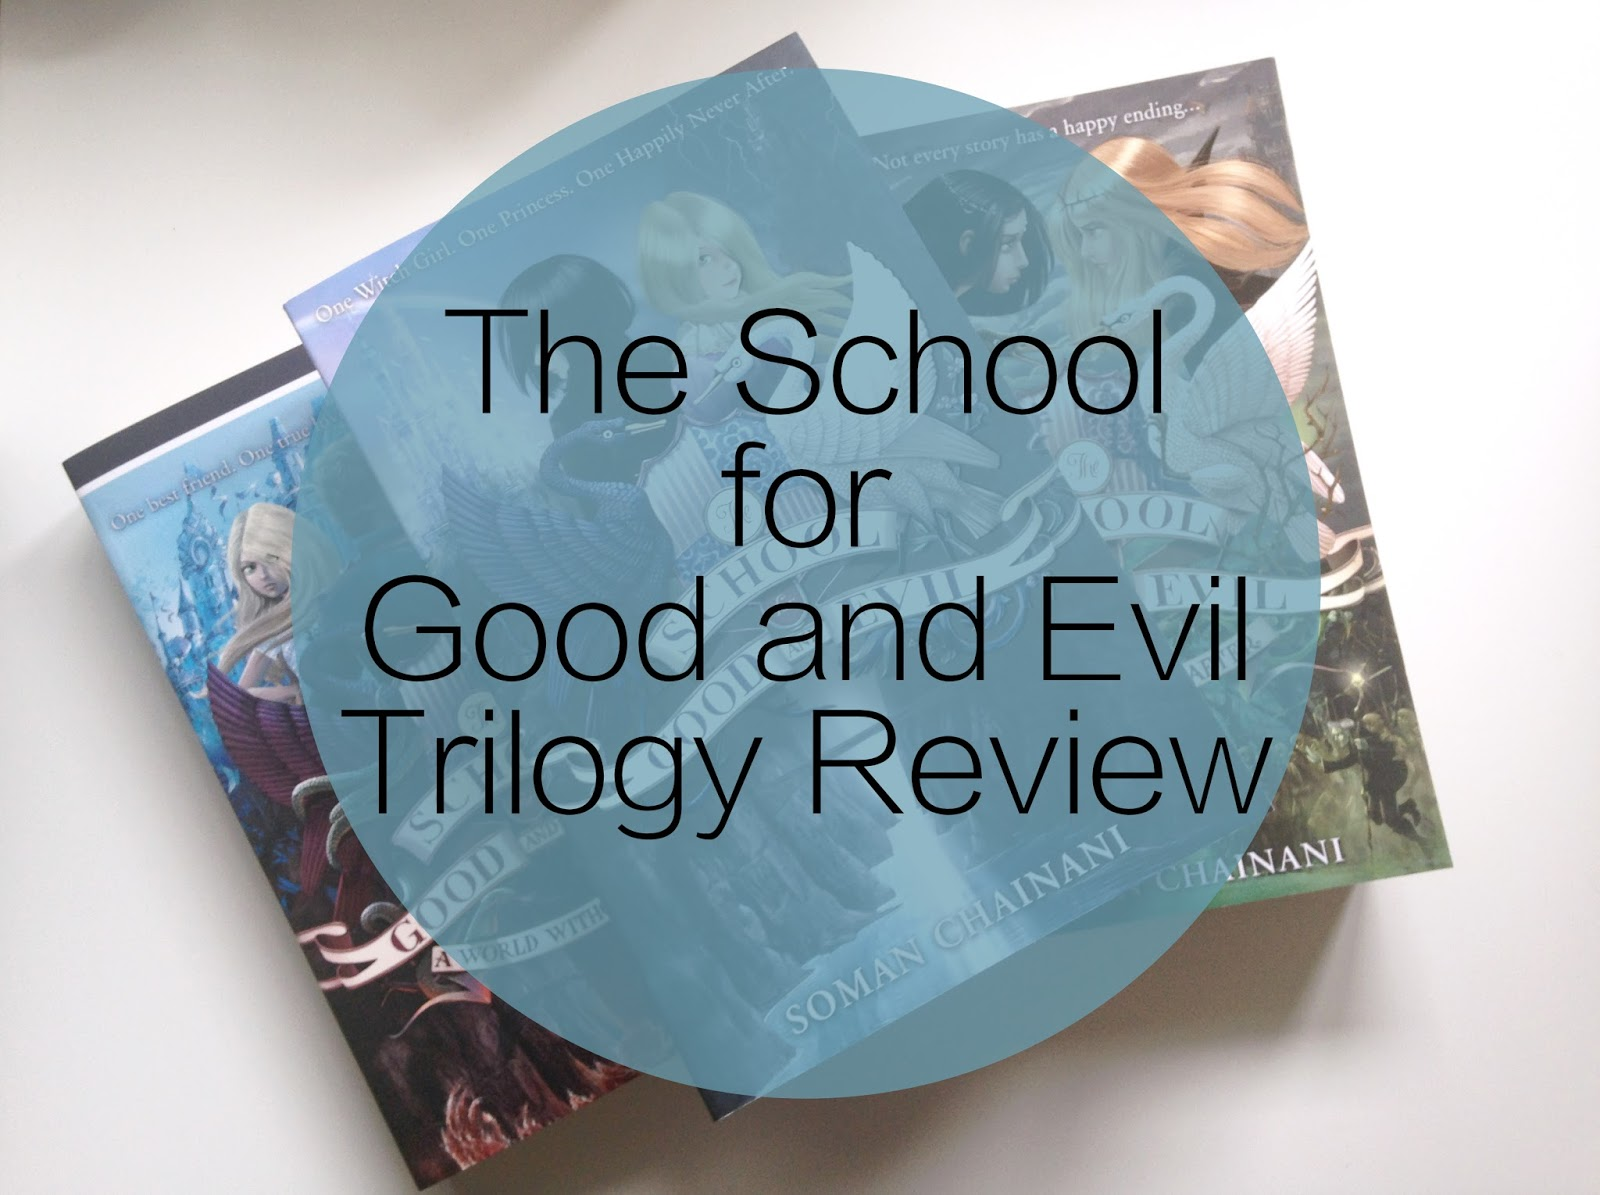 The School for Good and Evil Trilogy